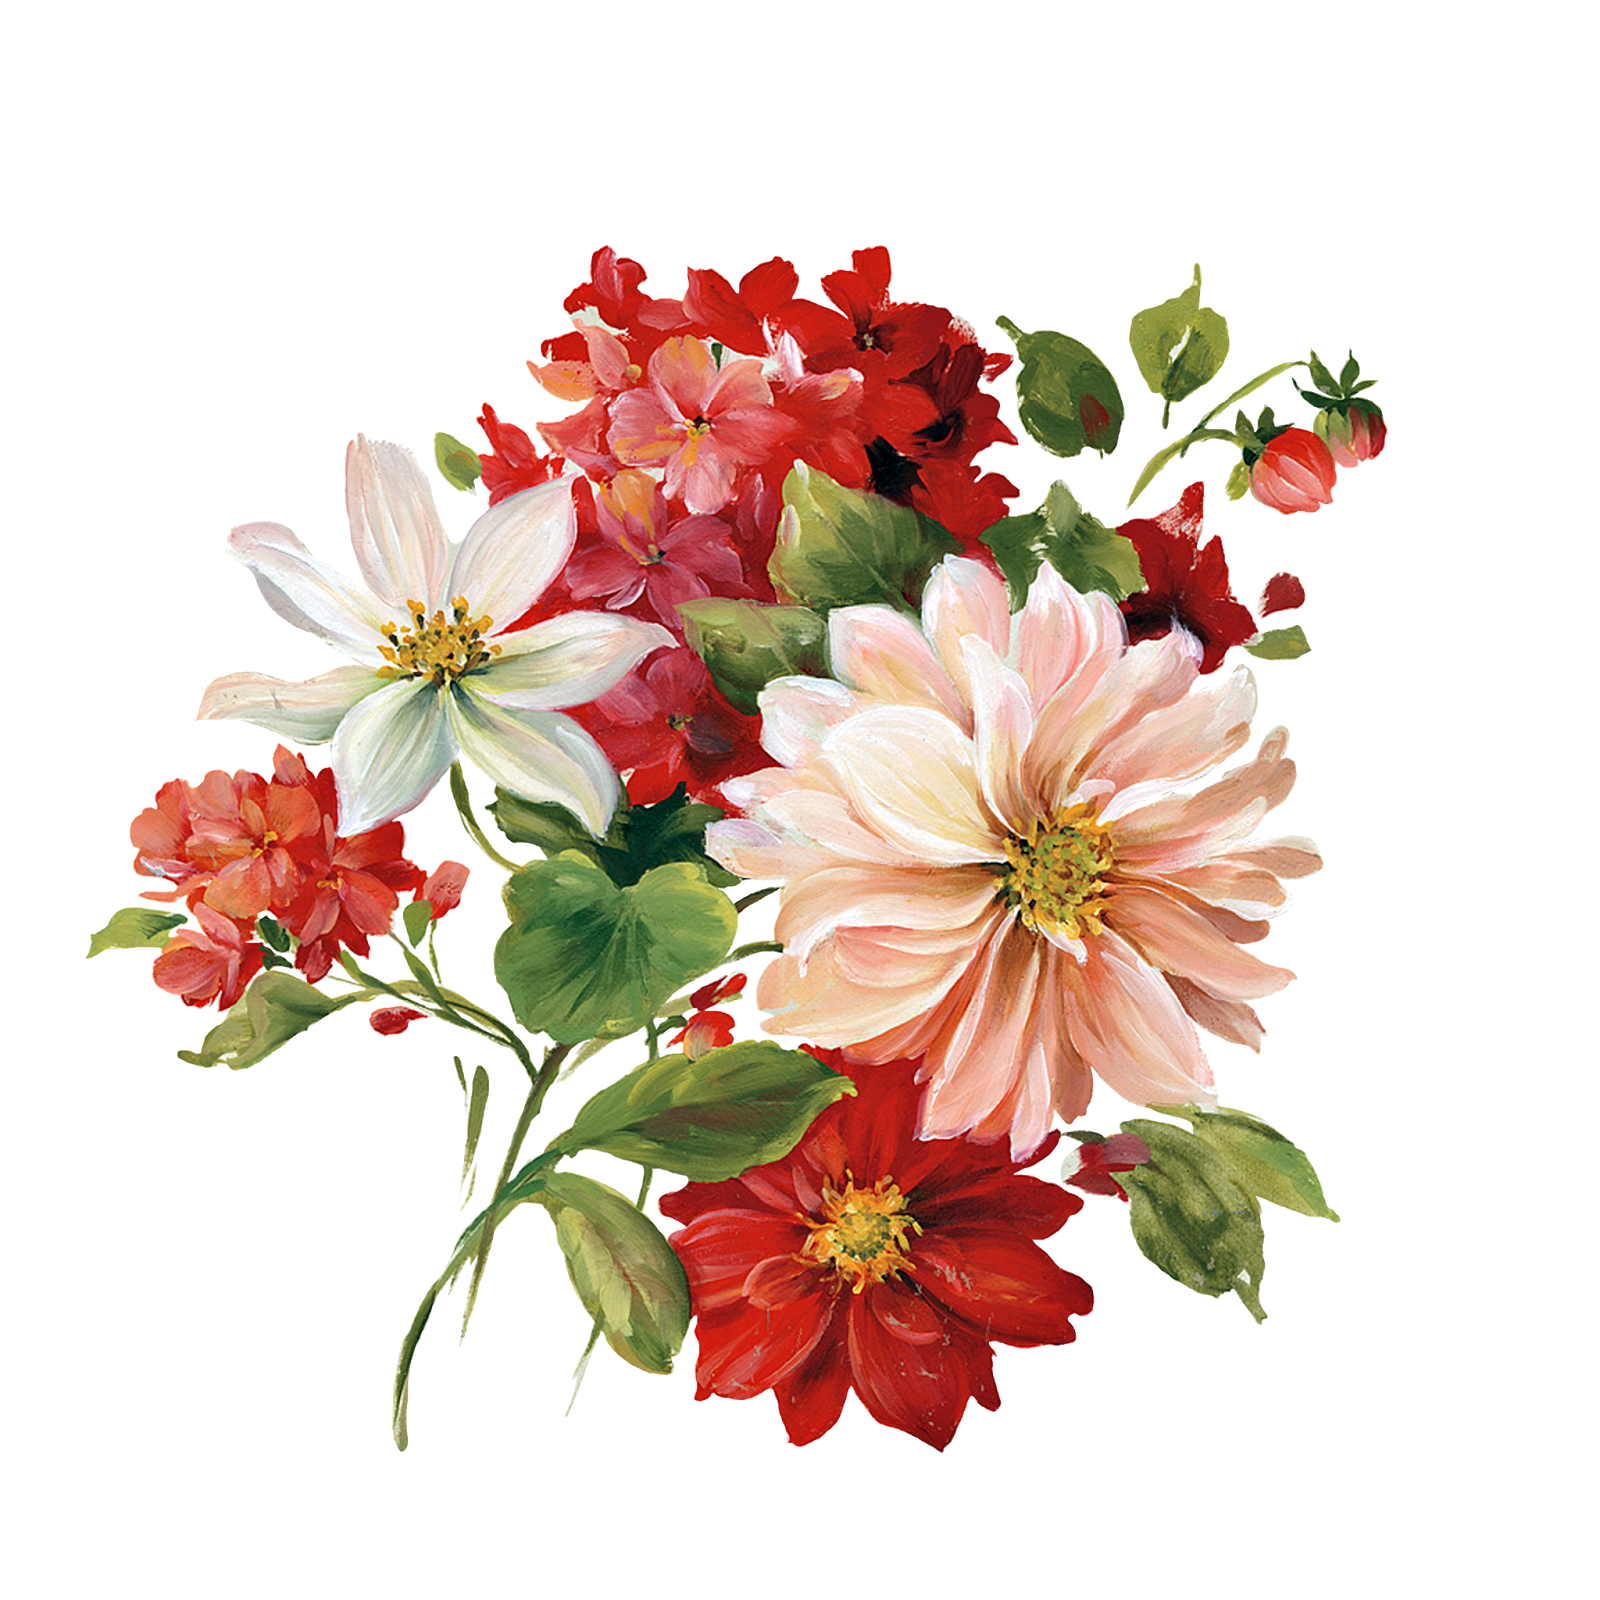 Floral Png  Picture Arts Png Library #43877 - PNG Images - PNGio